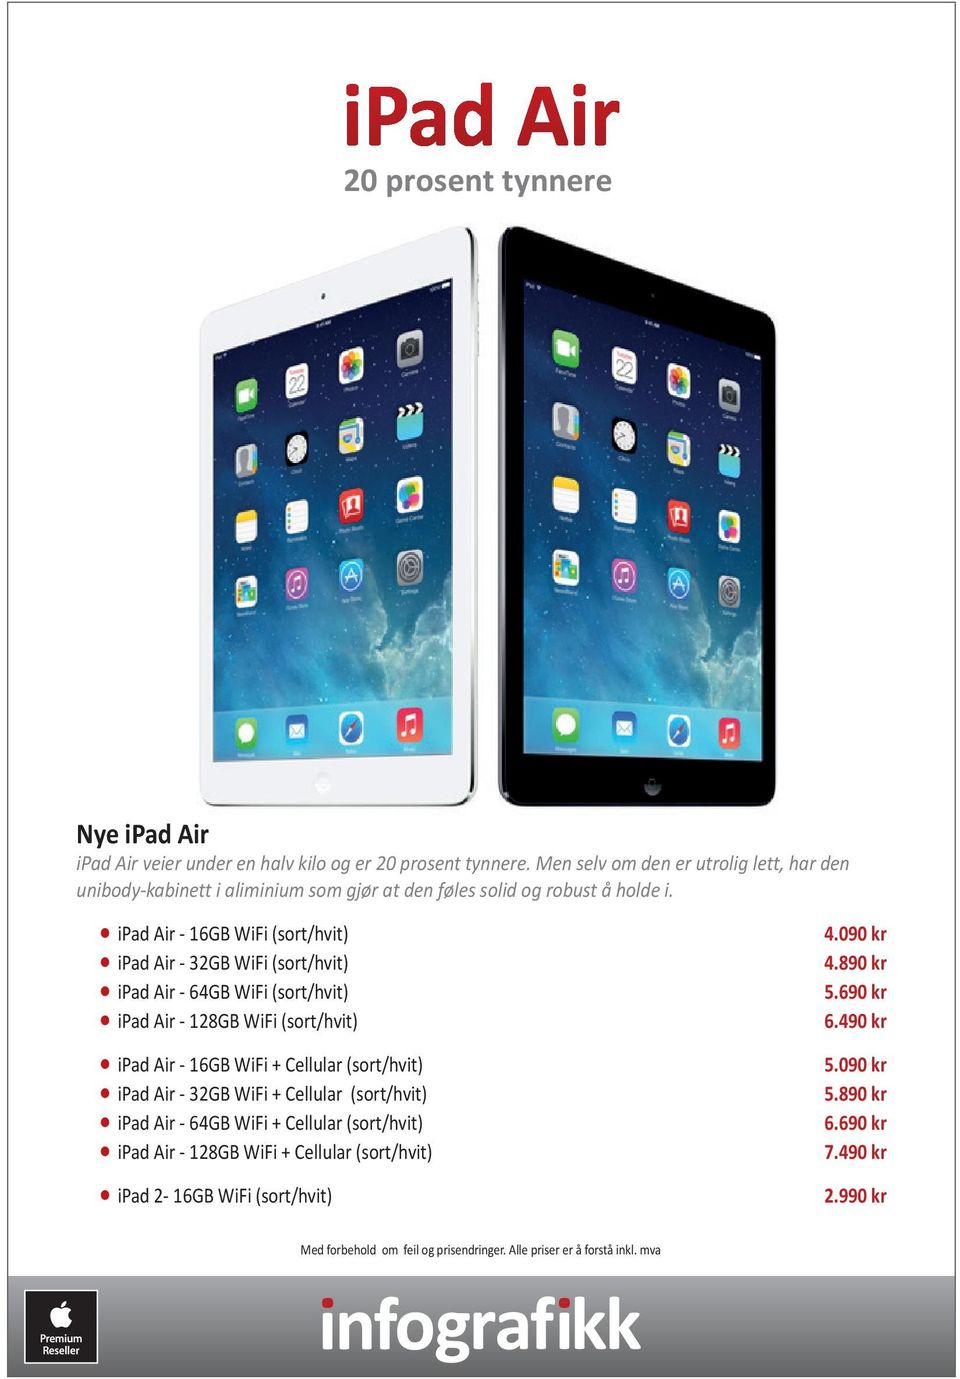 ipad Air - 16GB WiFi (sort/hvit) ipad Air - 32GB WiFi (sort/hvit) ipad Air - 64GB WiFi (sort/hvit) ipad Air - 128GB WiFi (sort/hvit) ipad Air - 16GB WiFi +